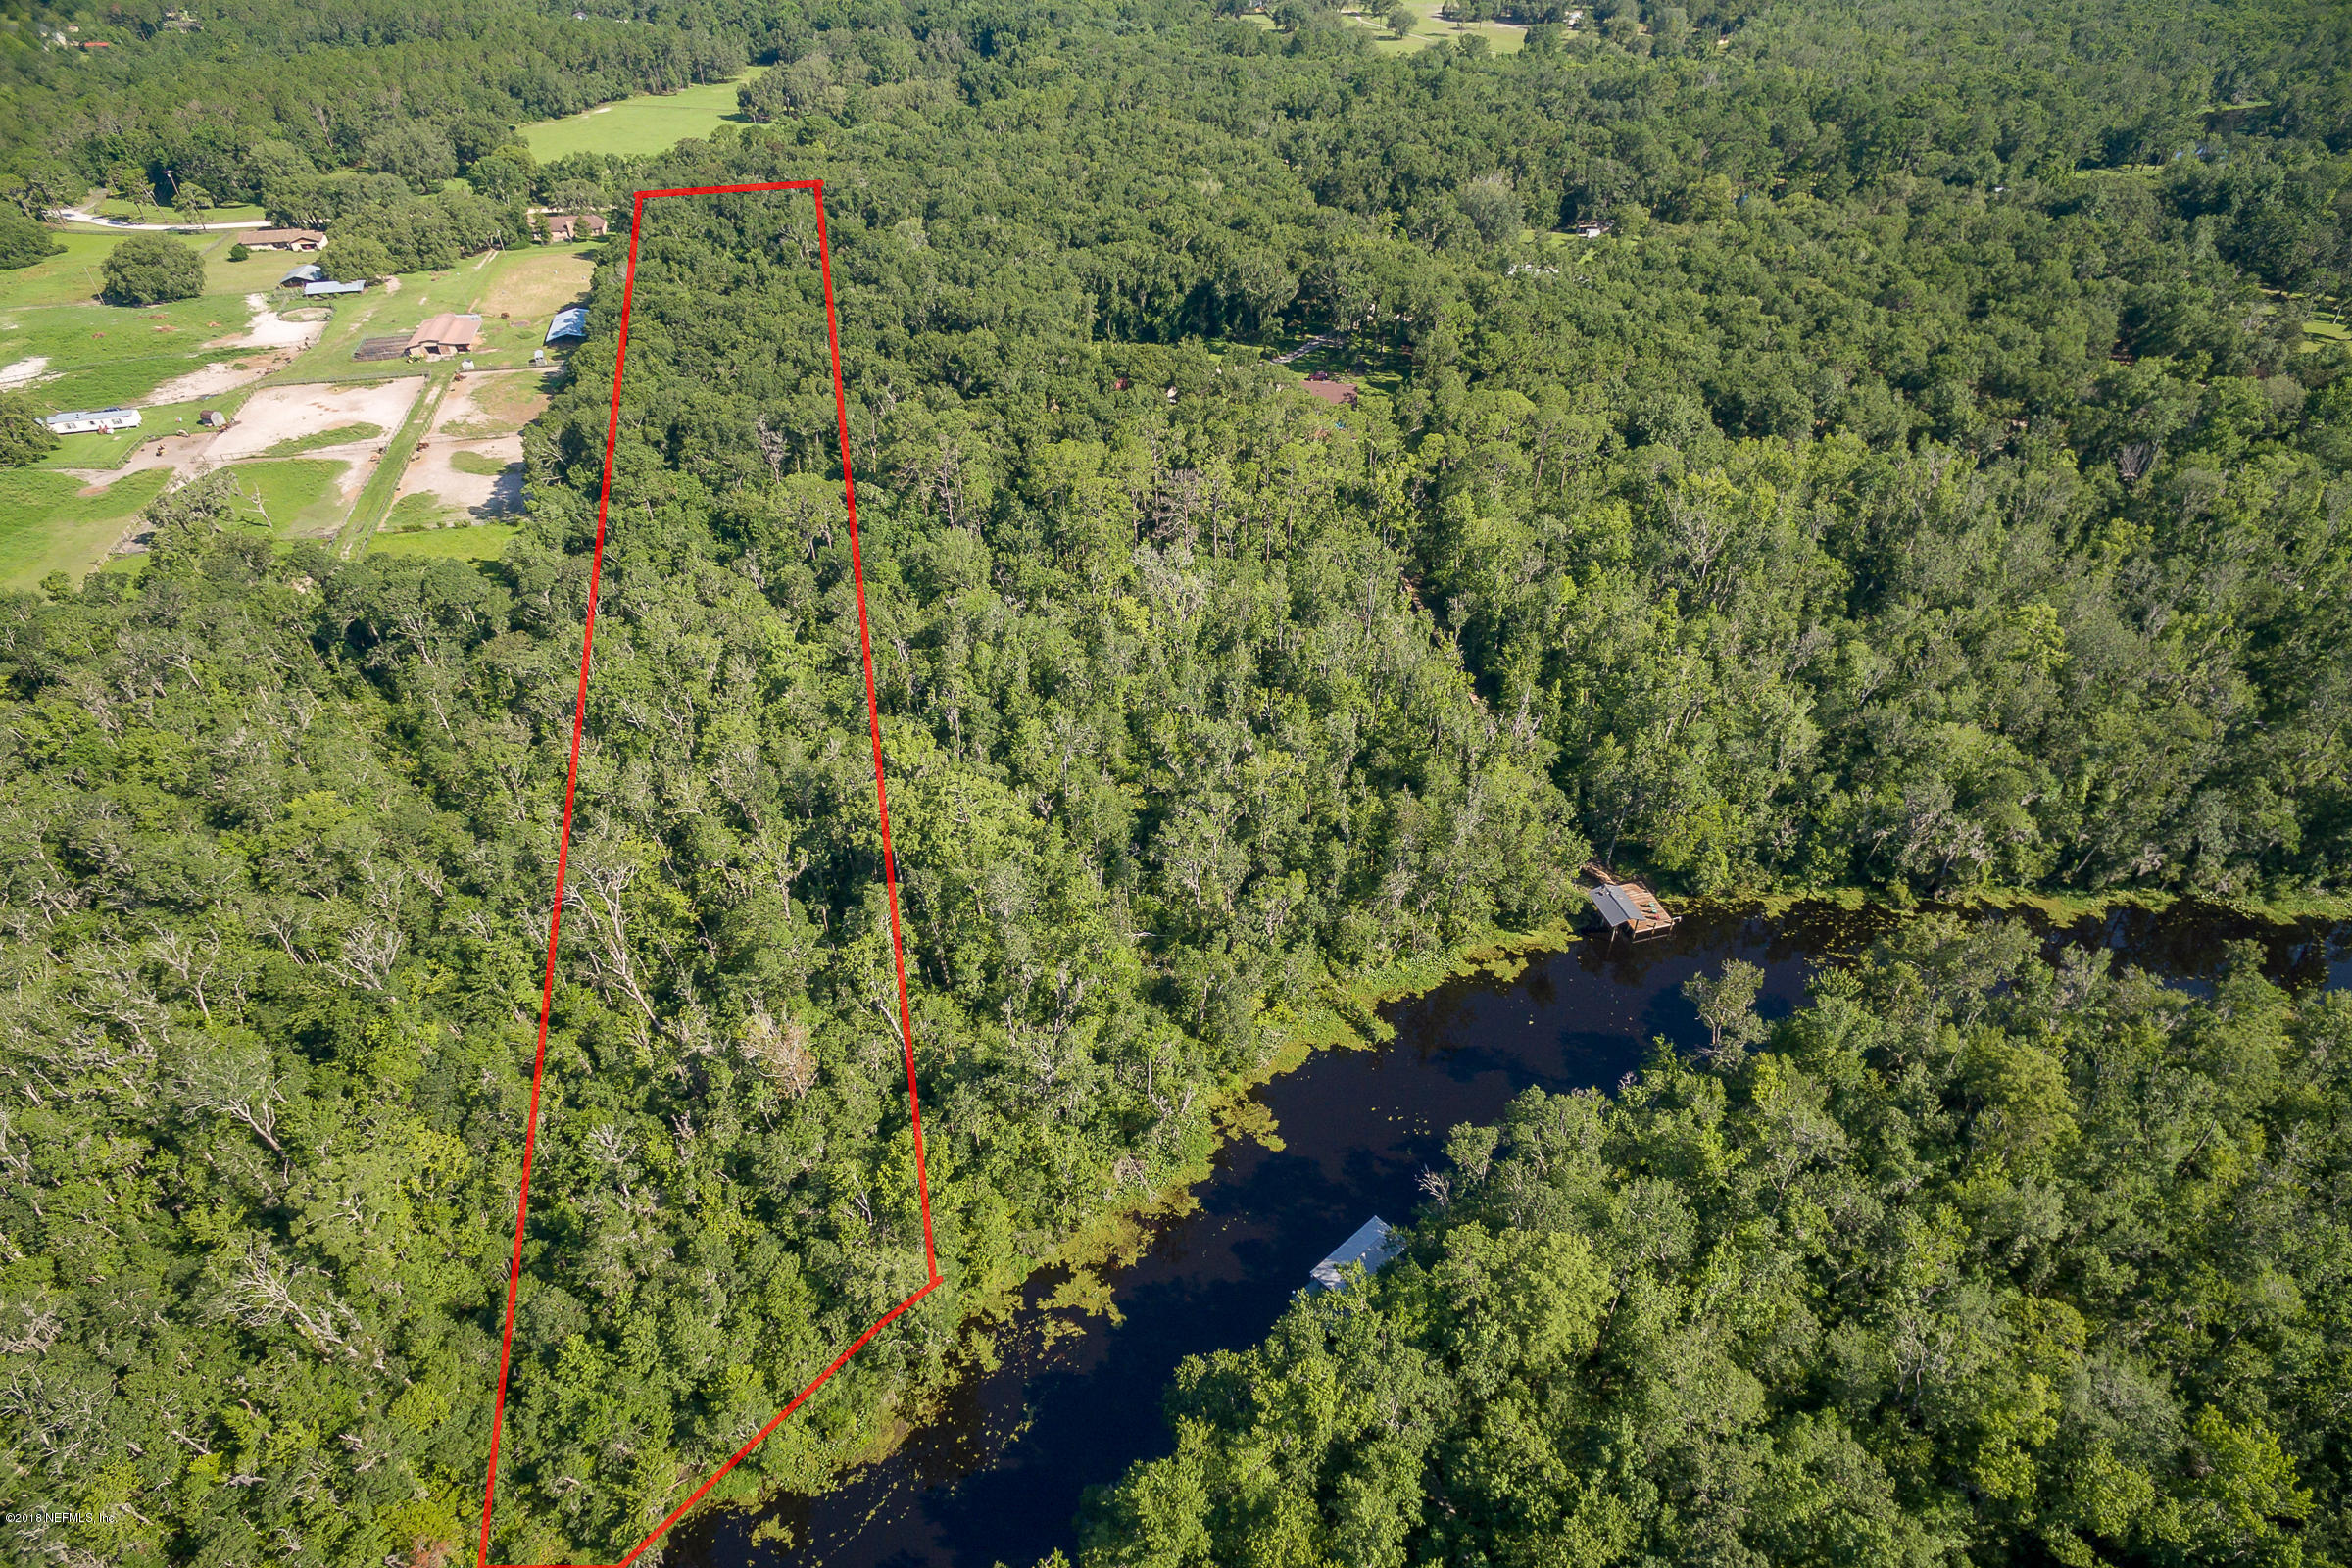 0 WATKINS, GREEN COVE SPRINGS, FLORIDA 32043, ,Vacant land,For sale,WATKINS,1036398